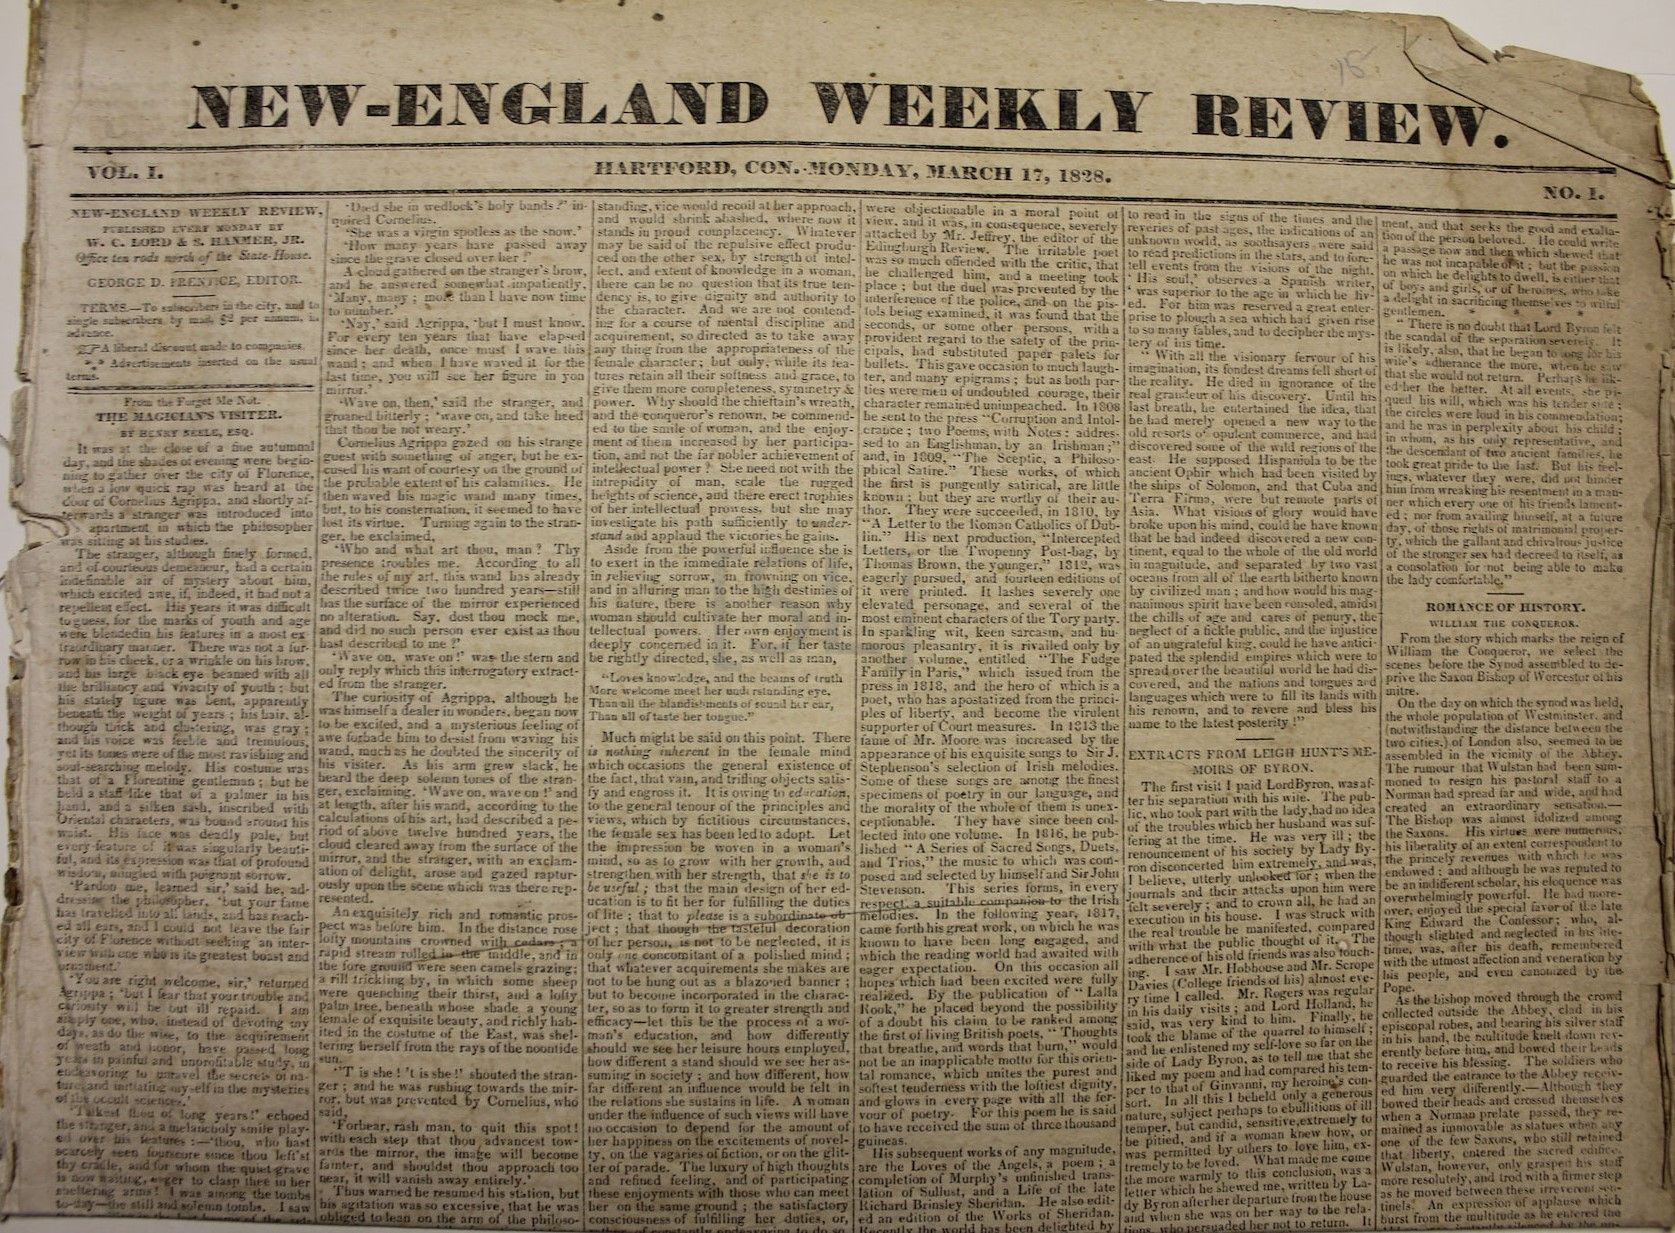 New-England Weekly Review